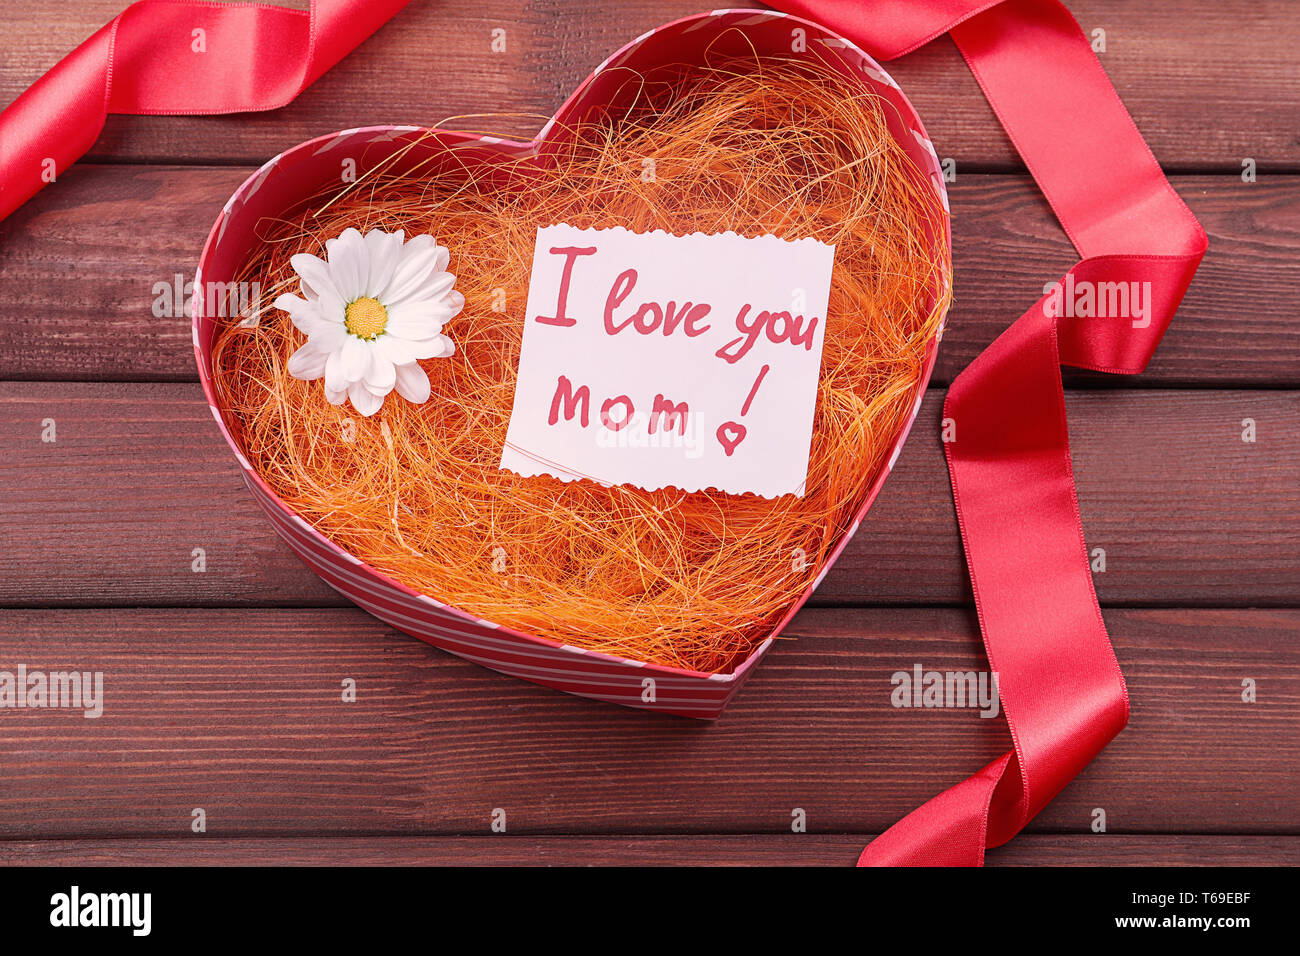 Gift box with greeting card for Mother's Day on wooden background Stock Photo